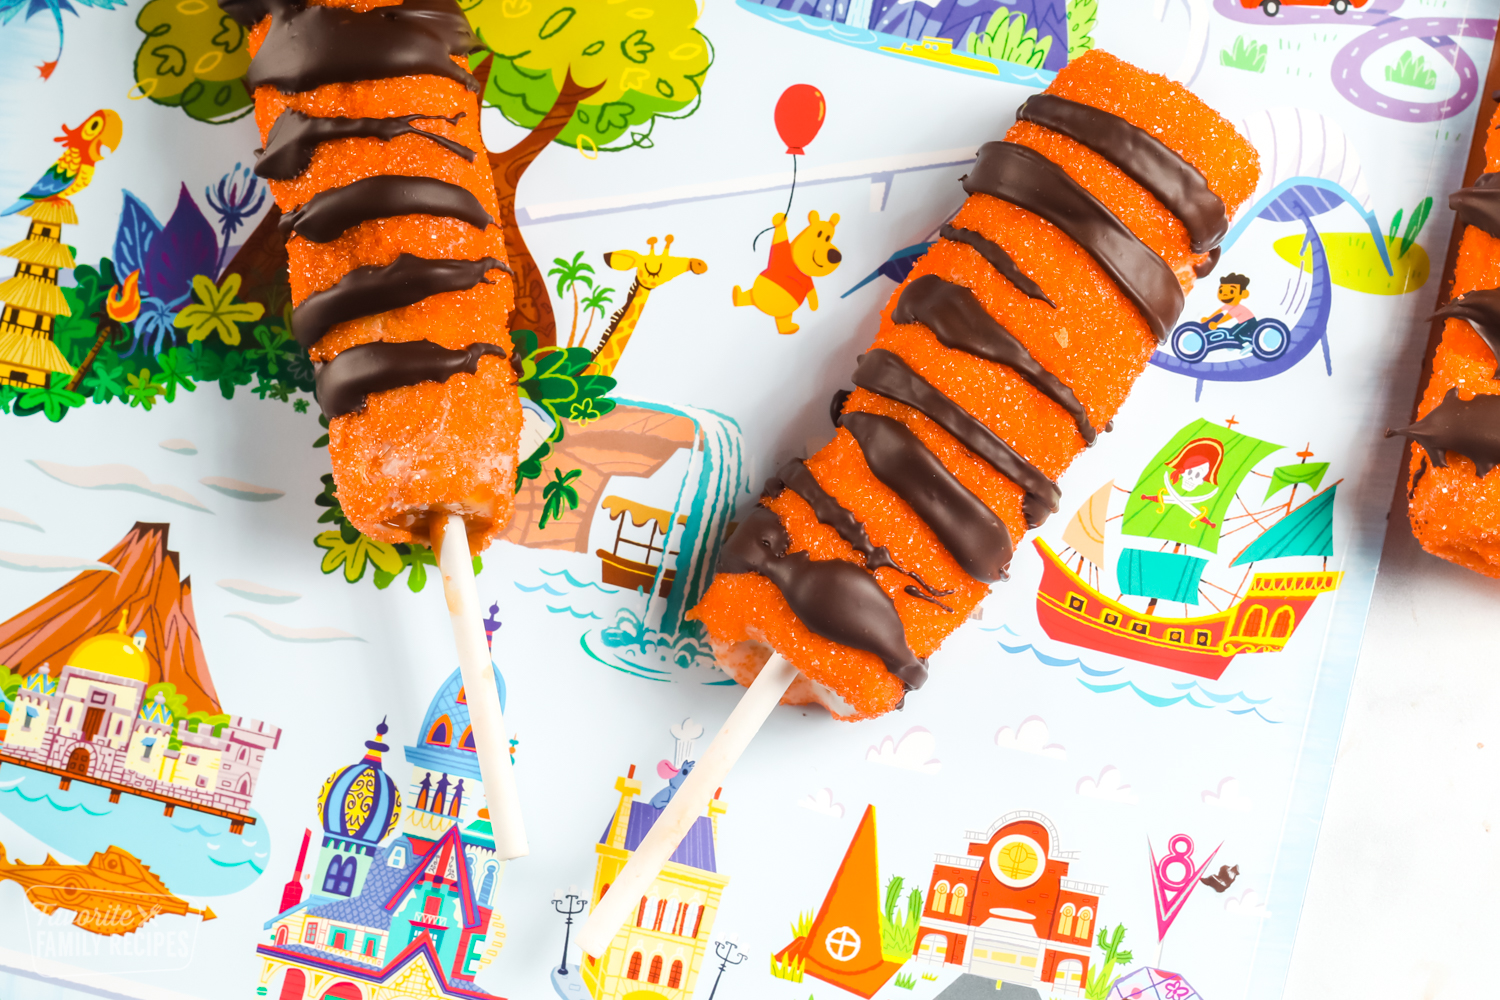 Tigger tails on a Disneyland placemat